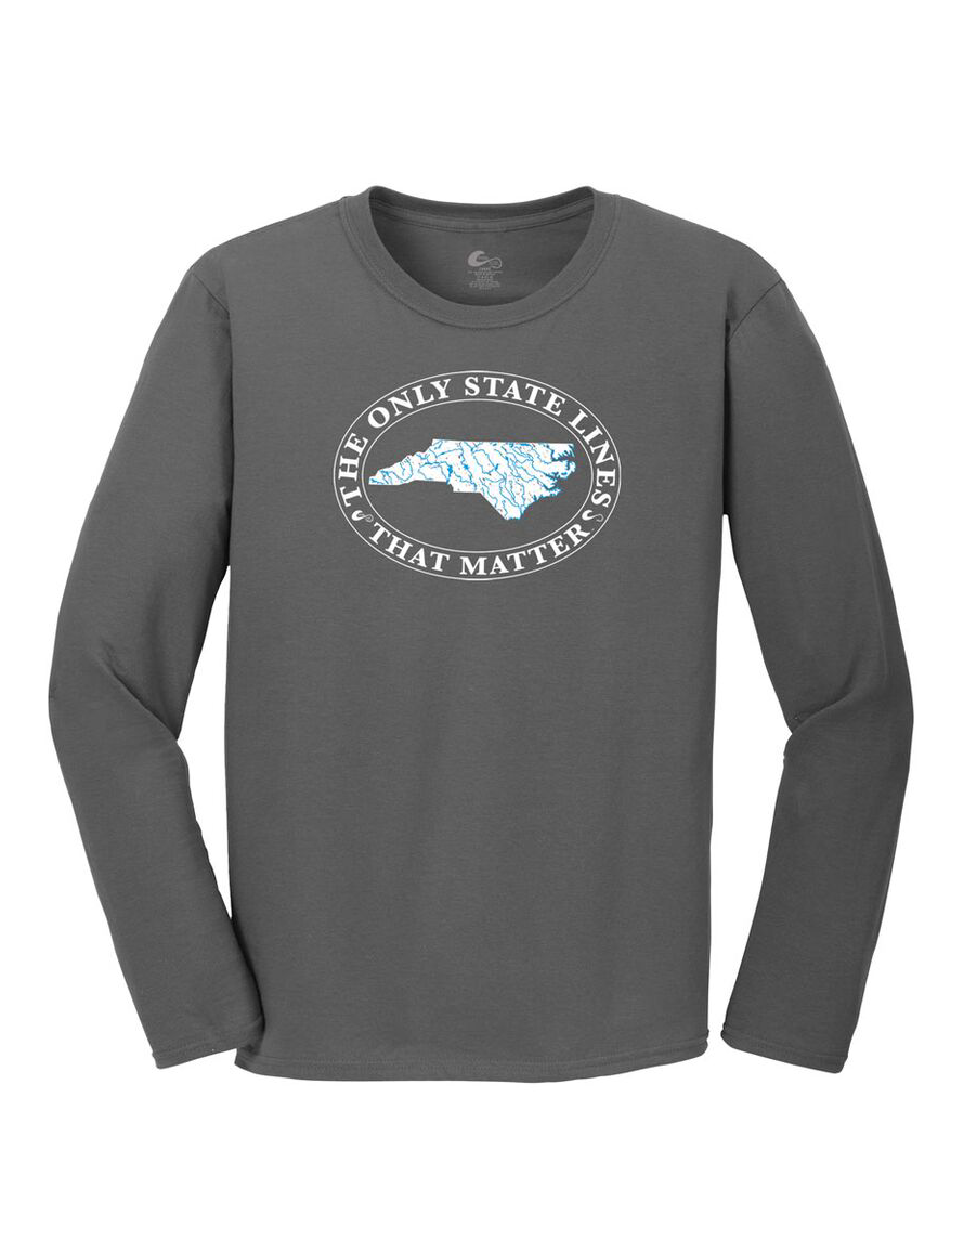 North Carolina State Waterways Long Sleeve T-Shirt